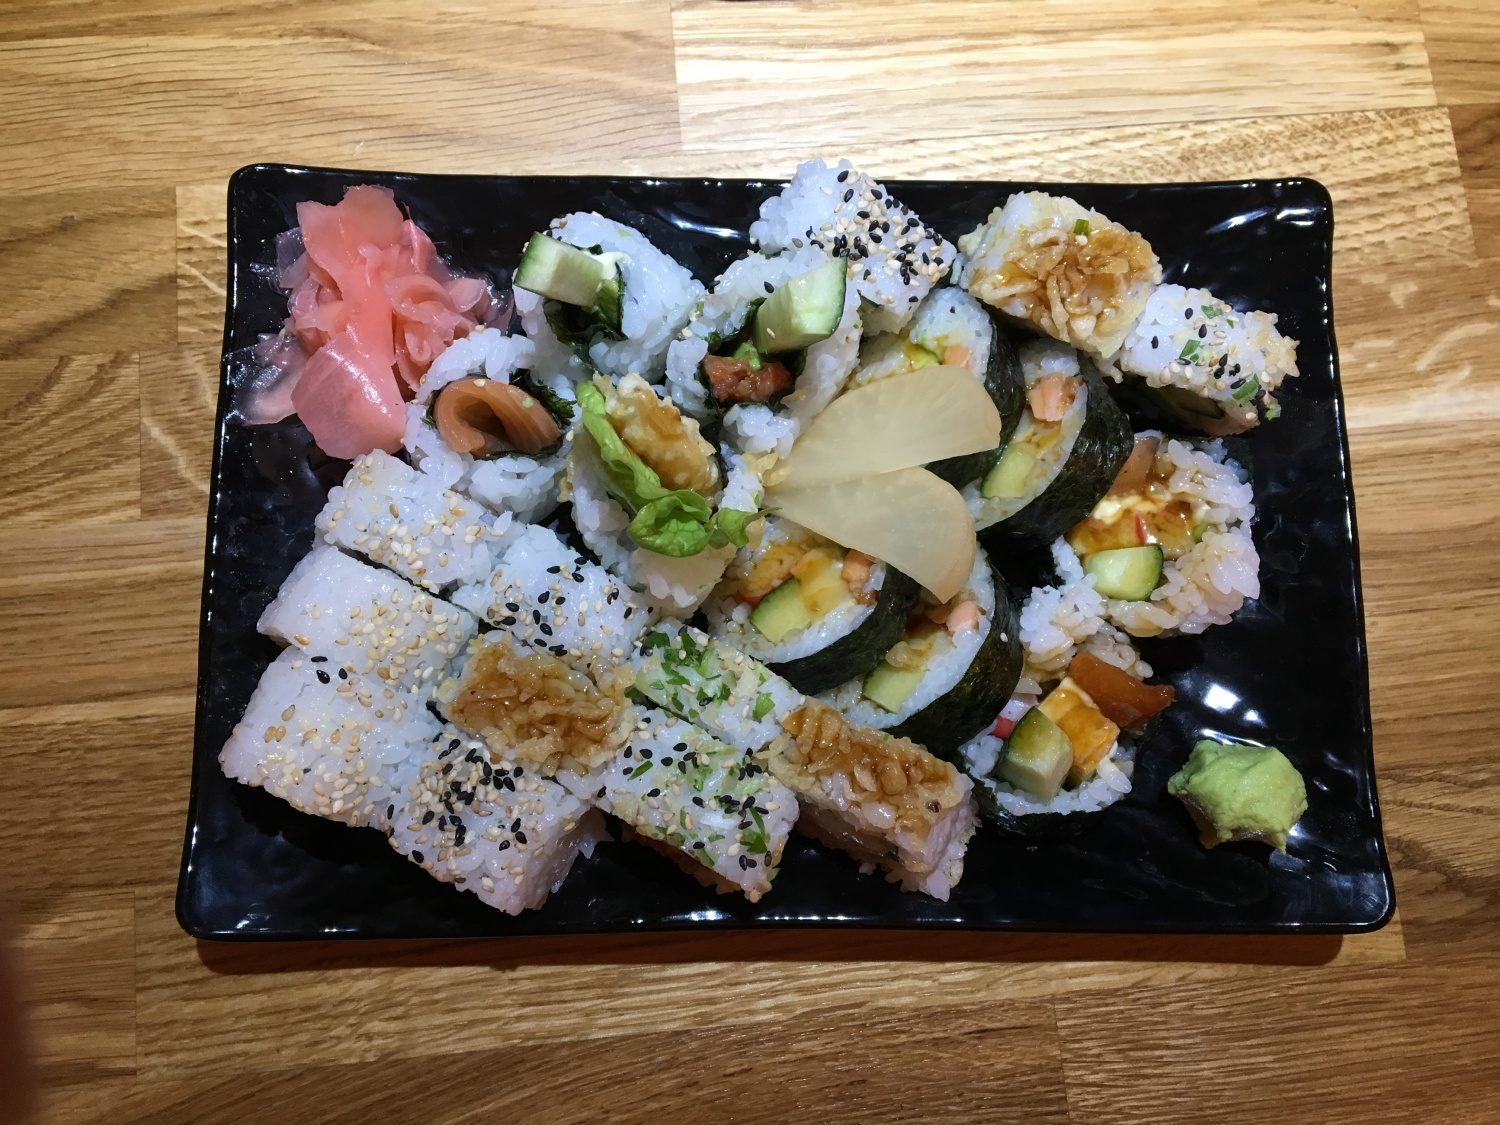 Gastronomic Gorman Sushido Sutton Coldfield